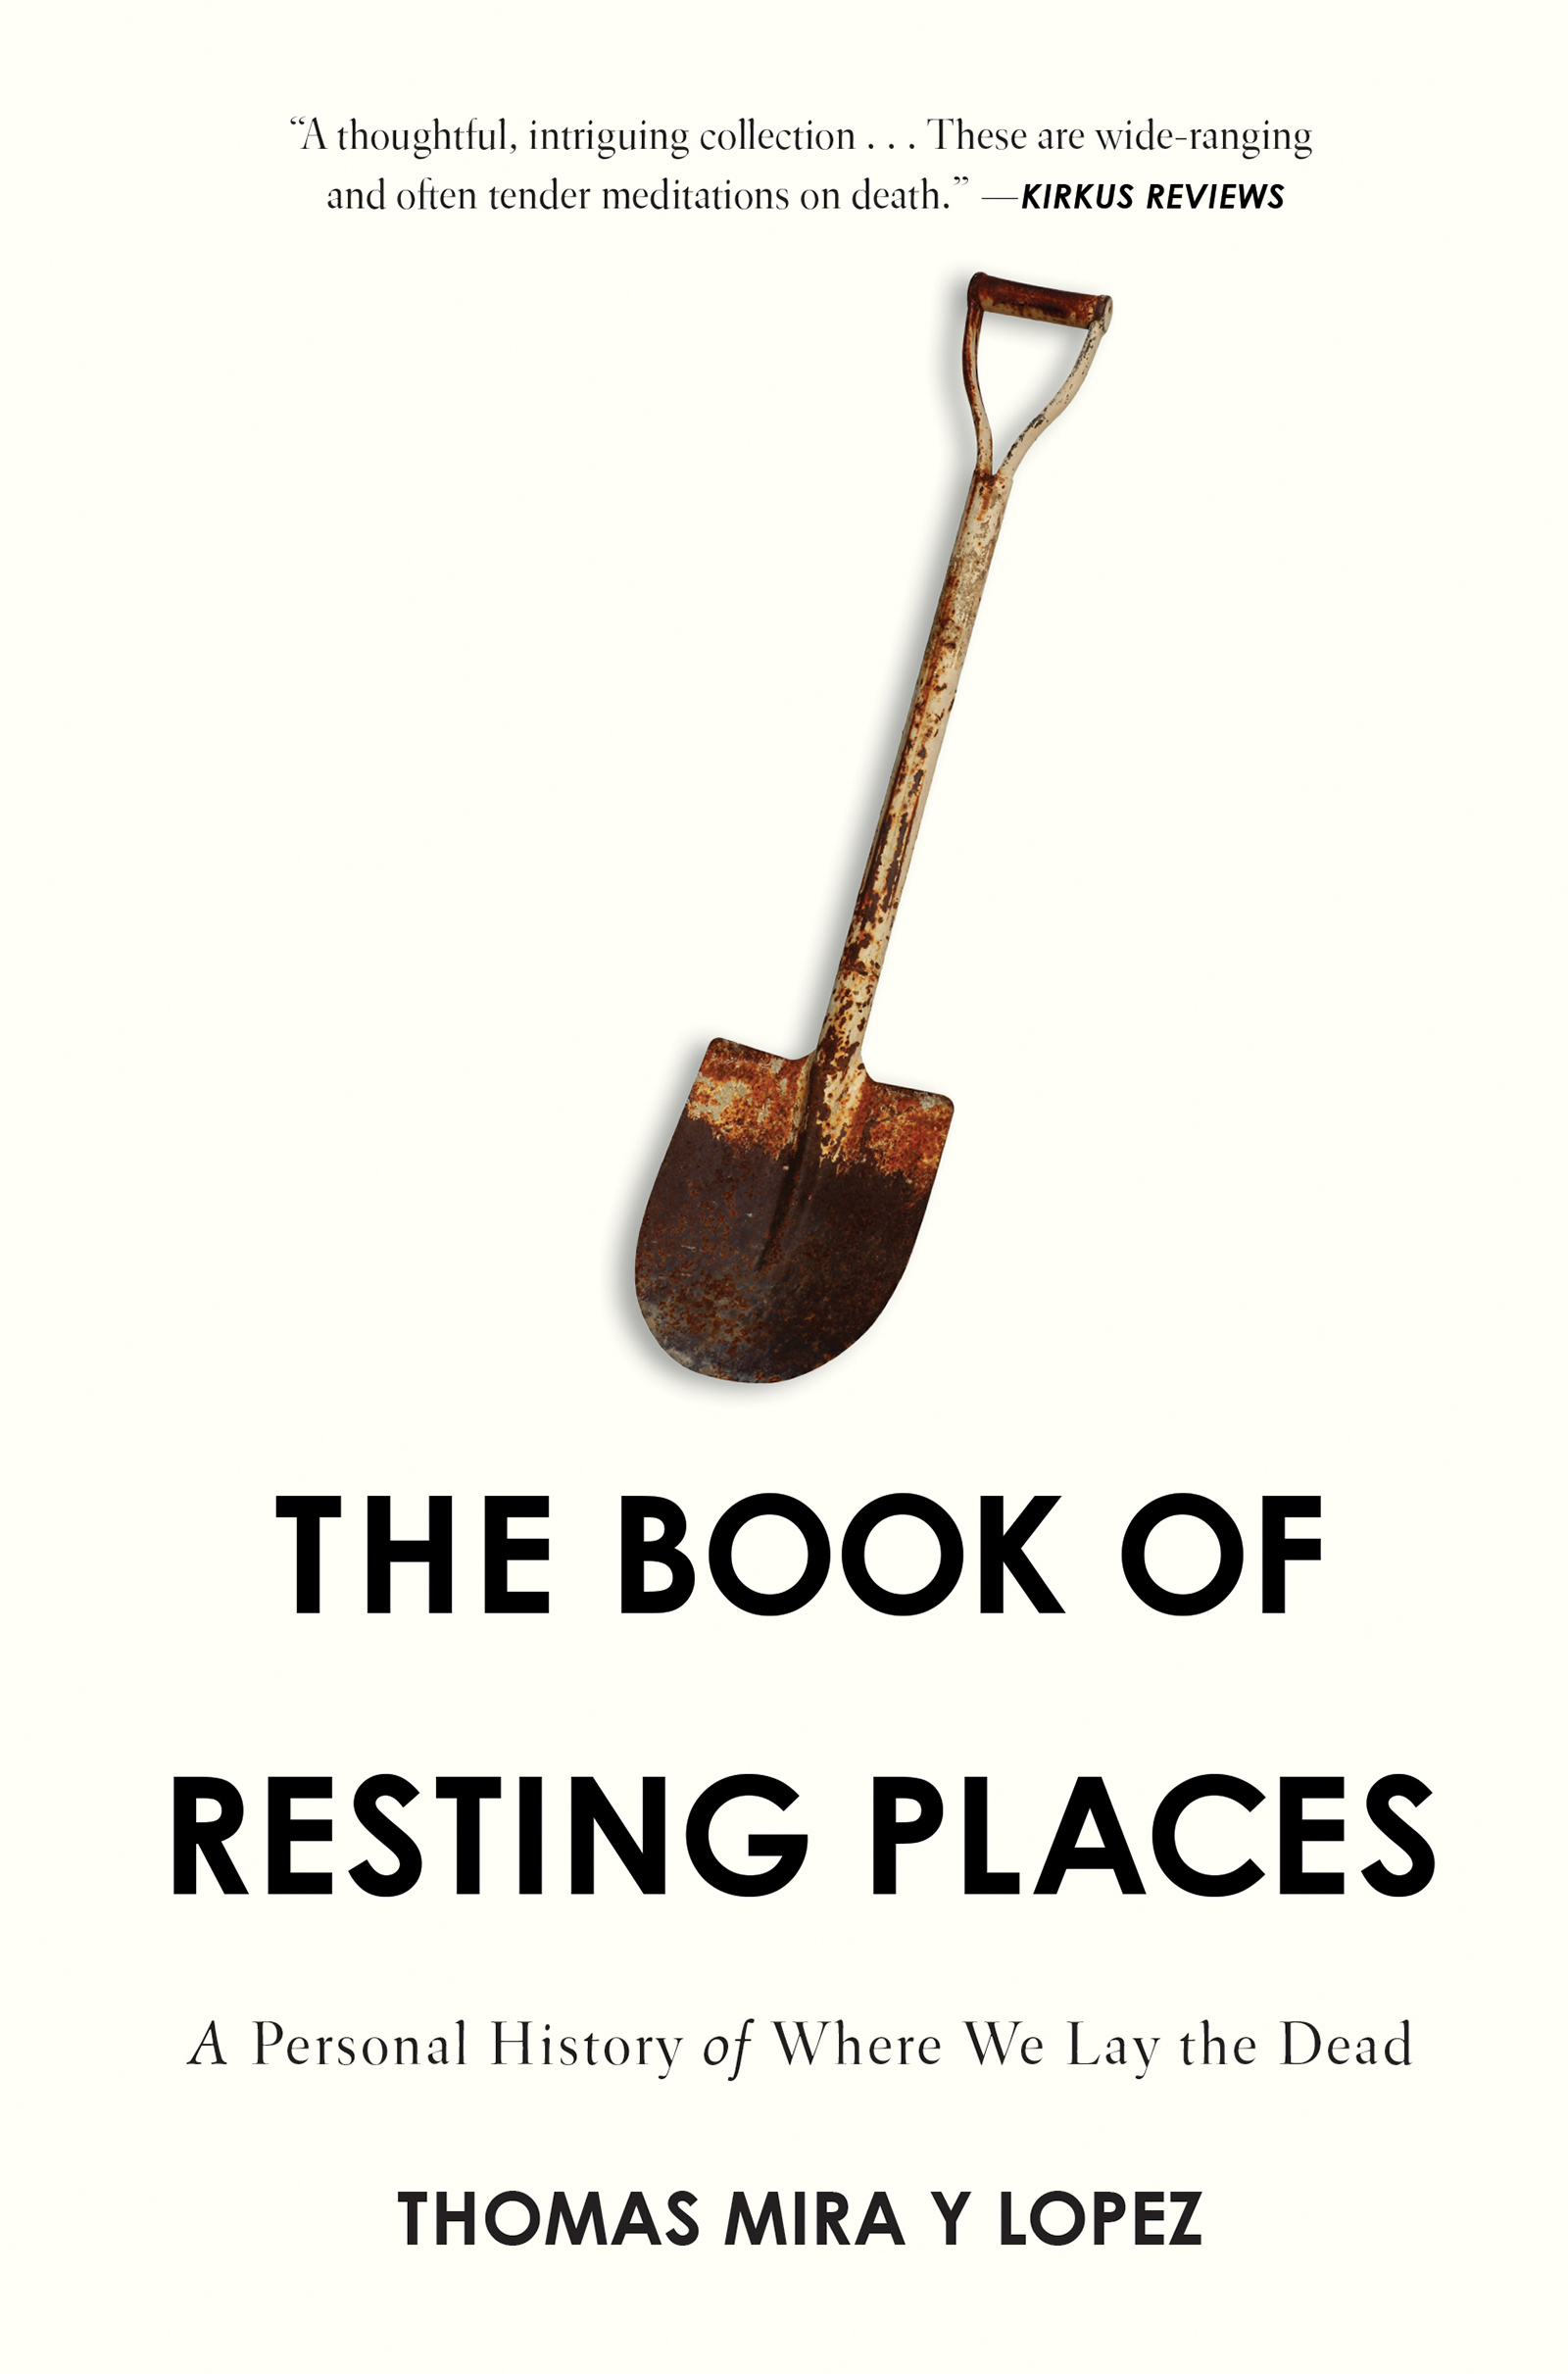 The Book of Resting Places A Personal History of Where We Lay the Dead